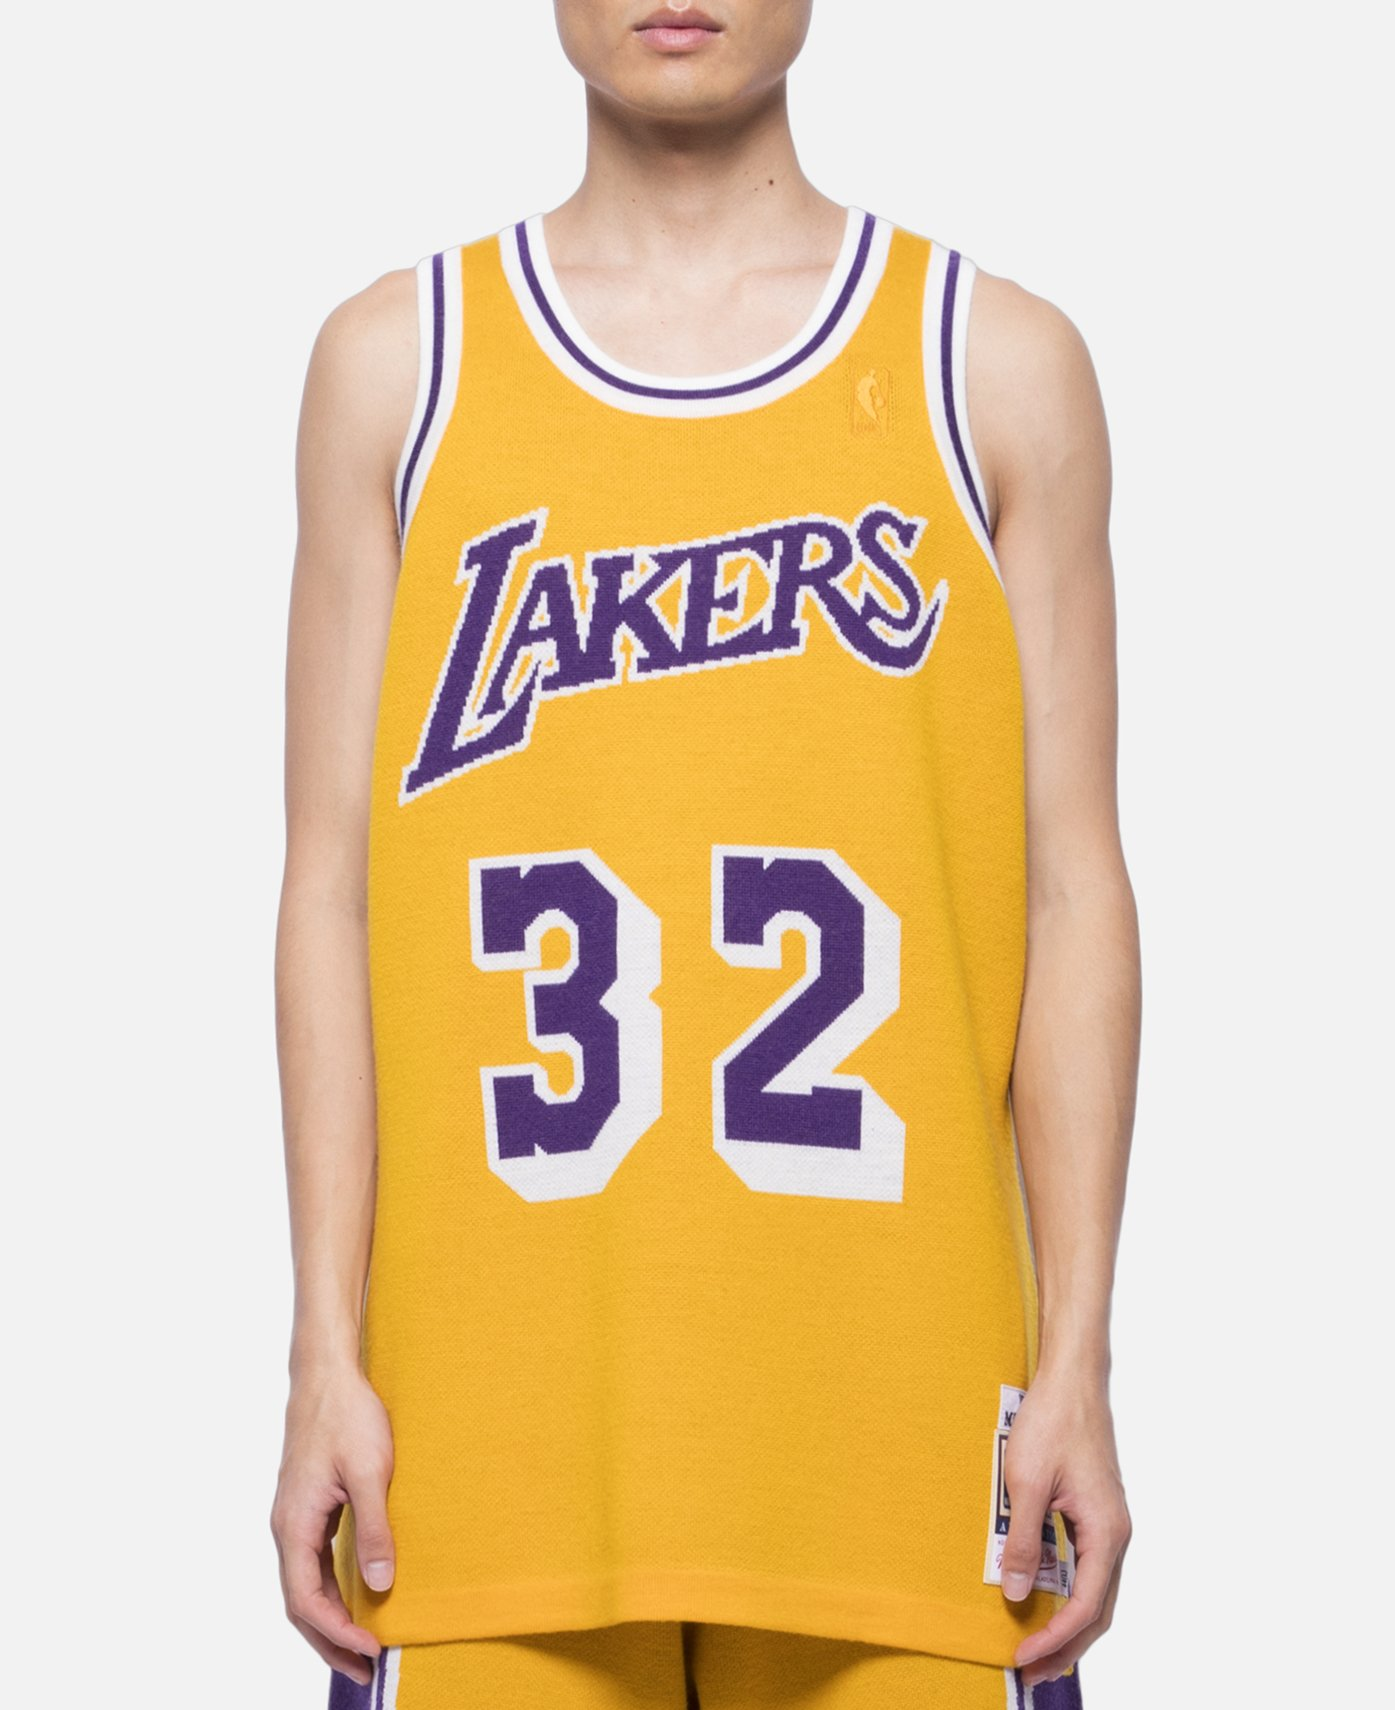 13f394c57 Mitchell   Ness 84-85 Los Angeles Lakers Magic Johnson Wool Knit Basketball  Jersey SS19 Size xl - Sweaters   Knitwear for Sale - Grailed